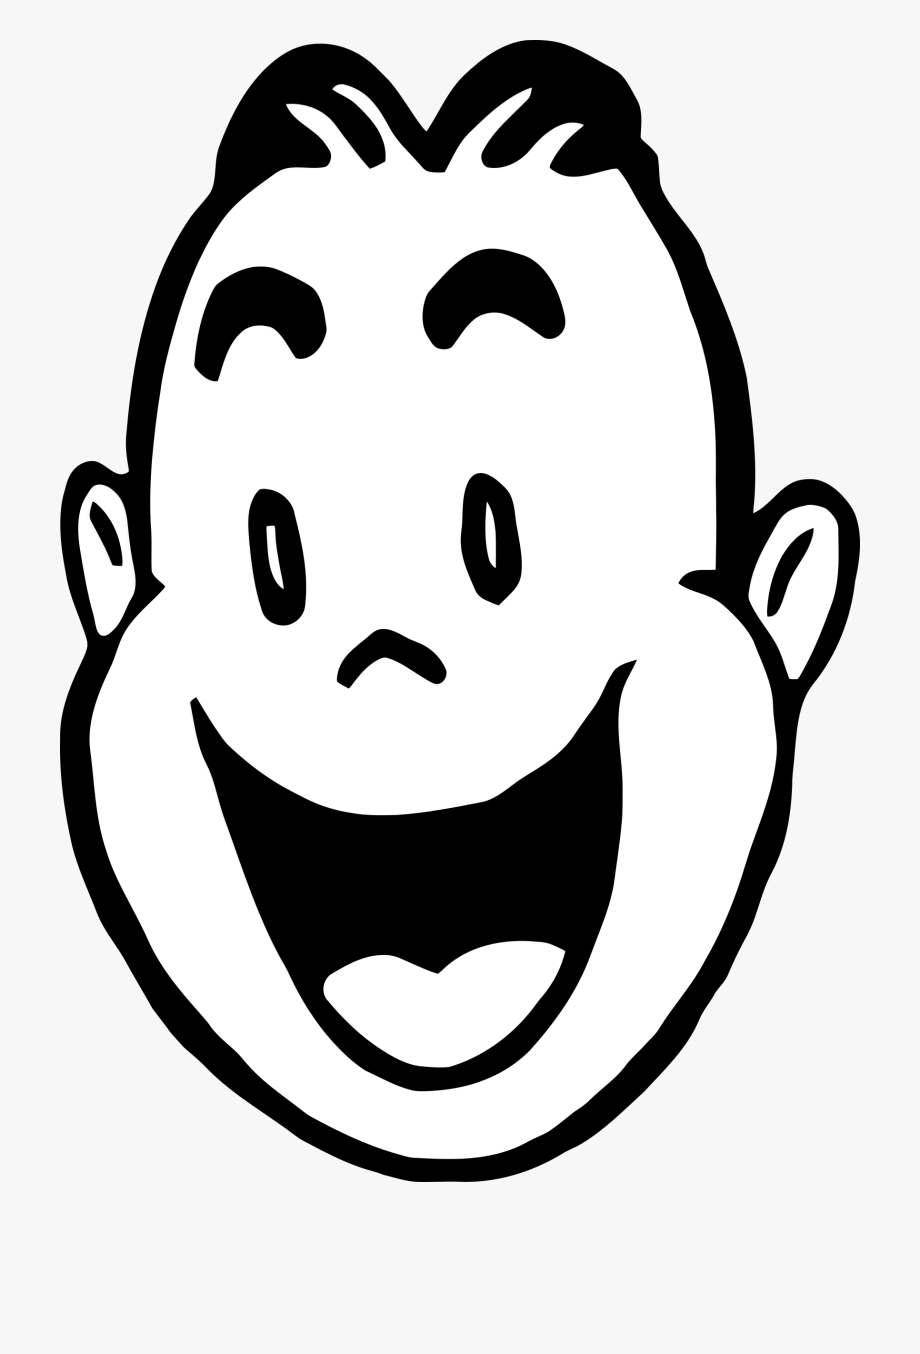 Png free smiling glad. Clipart smile smiled